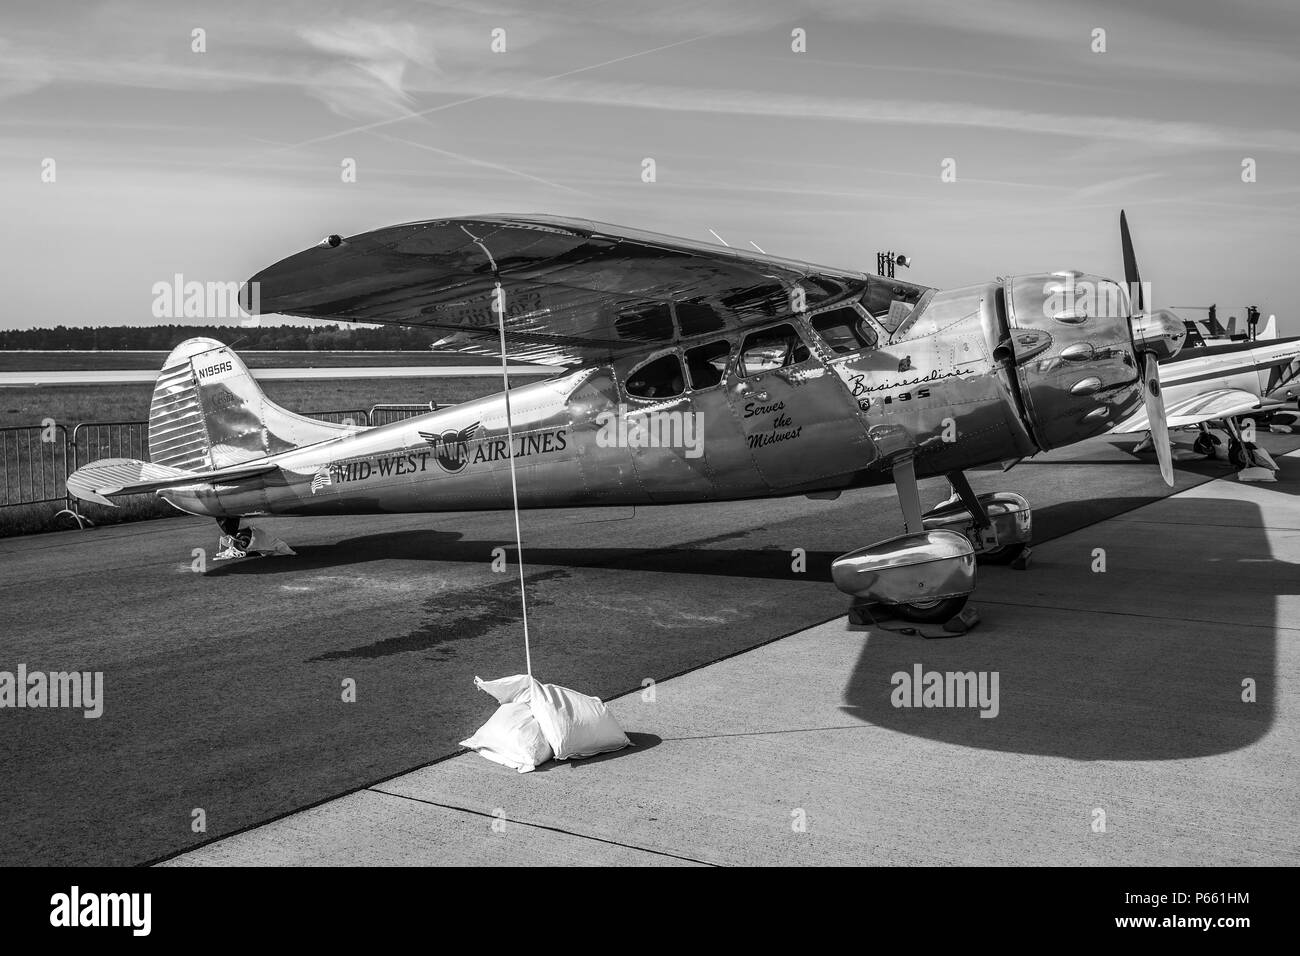 BERLIN - APRIL 27, 2018: Light personal and business aircraft Cessna 195A by Mid-West Airlines on the airfield. Black and white. Exhibition ILA Berlin - Stock Image